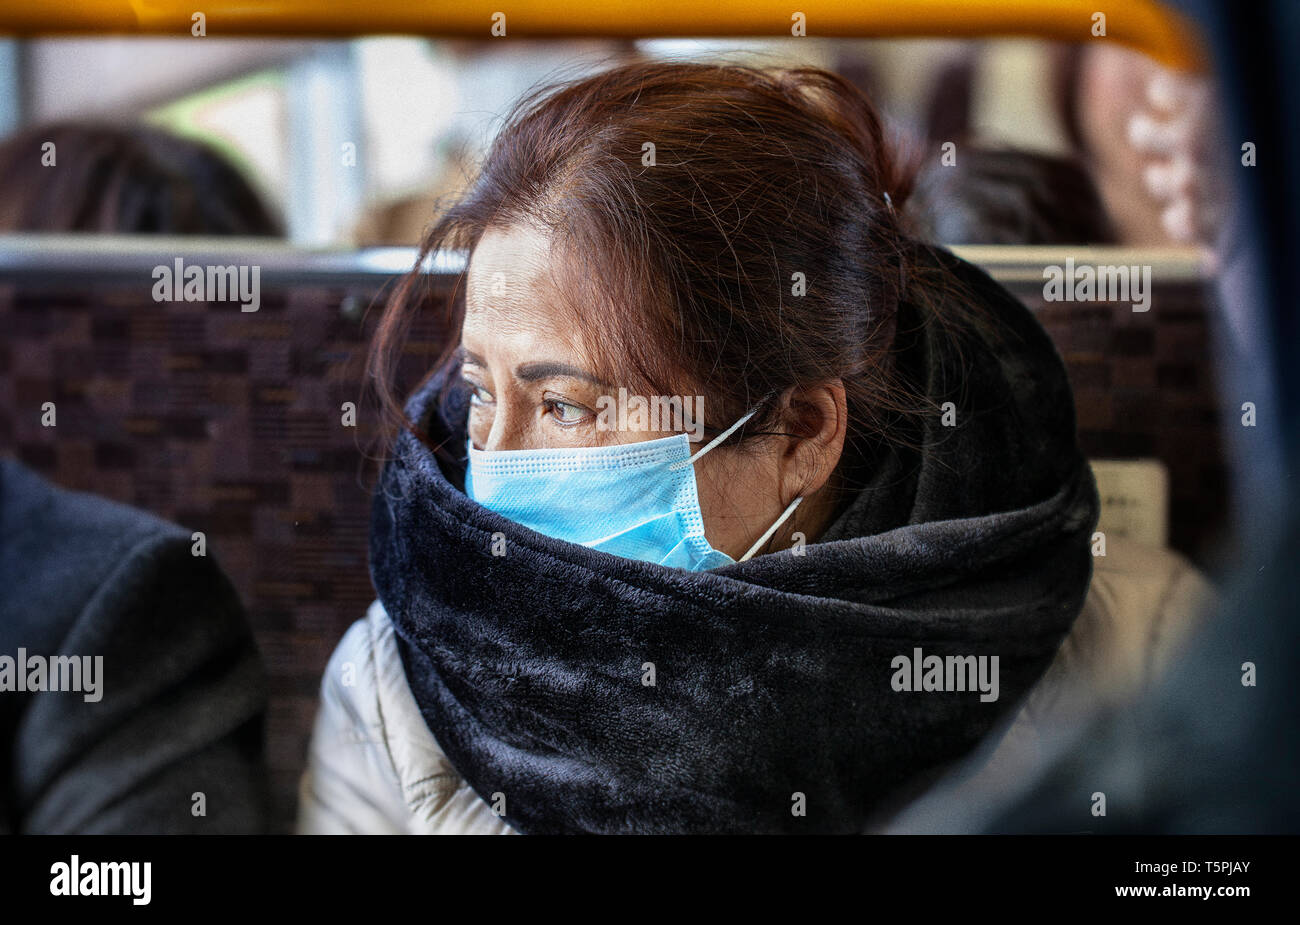 Older Asian woman wearing black fur scarf and surgical pollution mask sitting on a bus train subway - Stock Image